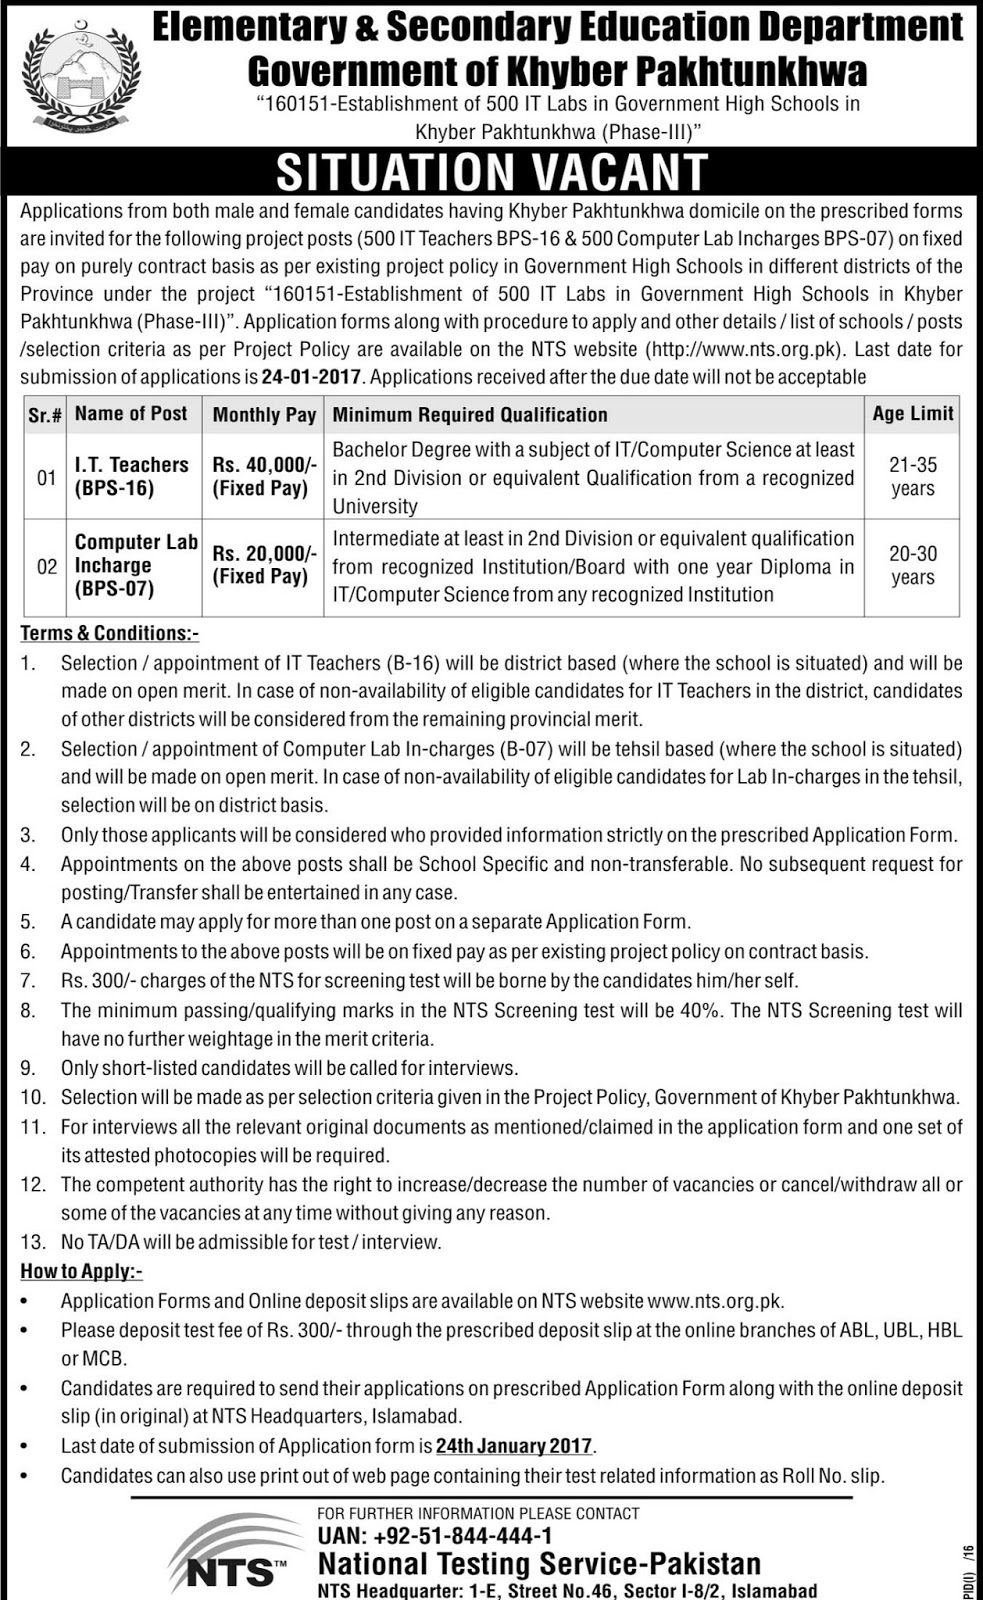 KPK Jobs in Elementary and Secondary Education Department